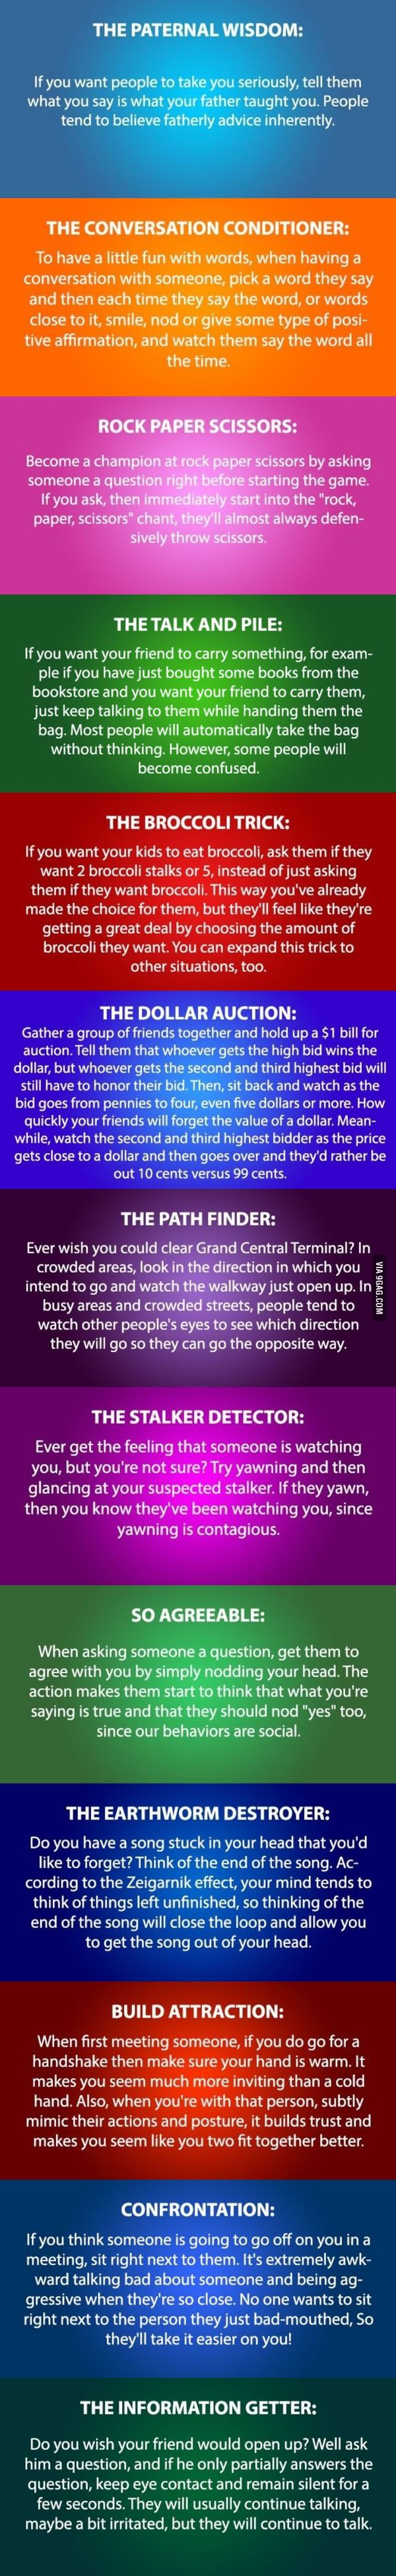 A little bit of fun - 13 Cool Psychology Tricks You Need To Try